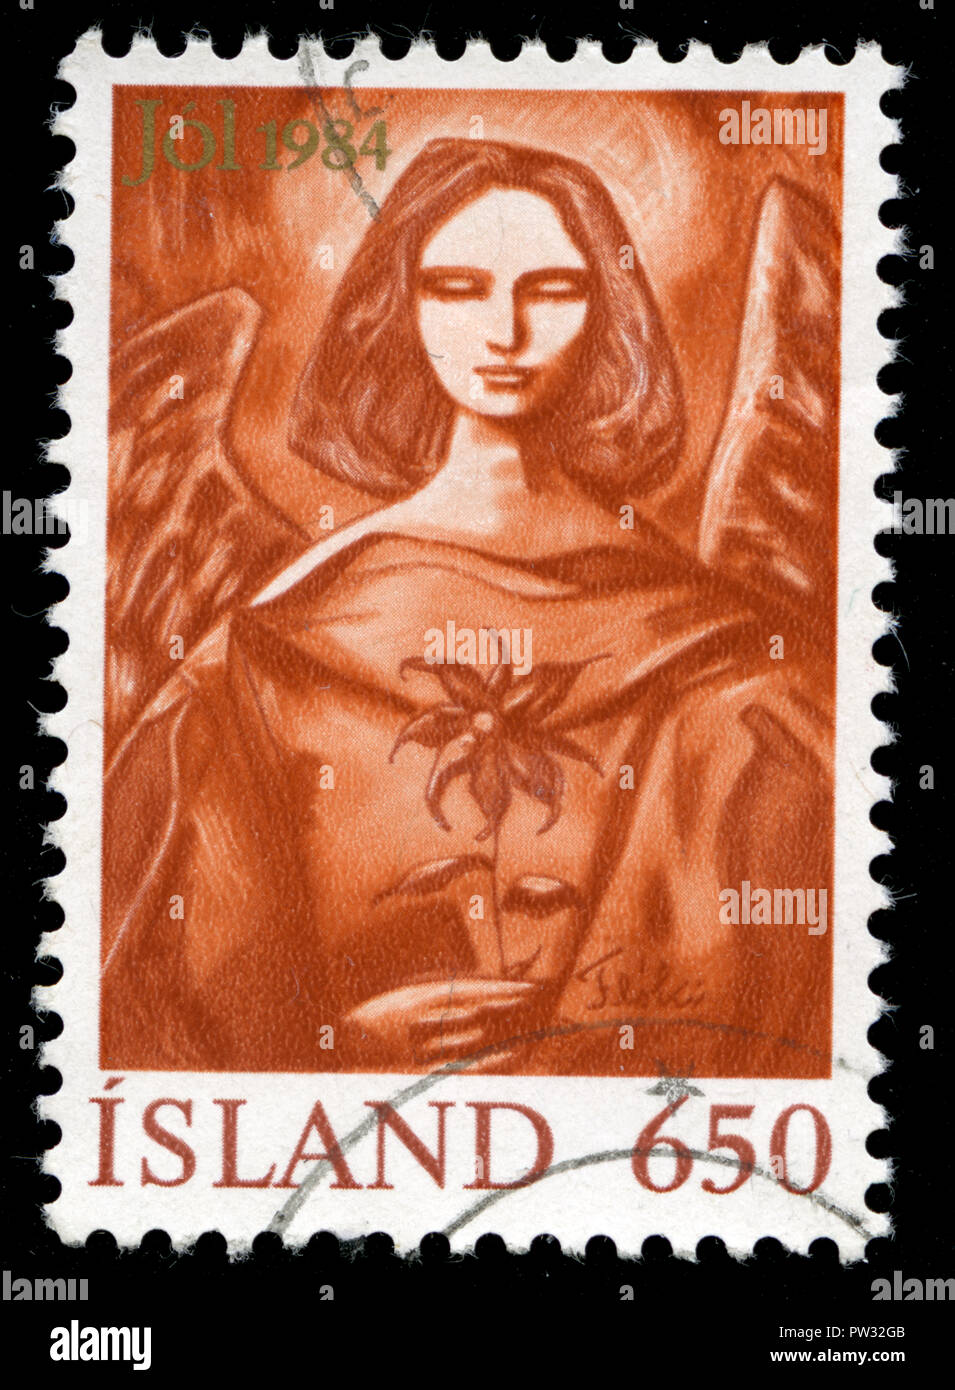 Postmarked stamp from Iceland in the Christmas series issued in 1964 - Stock Image